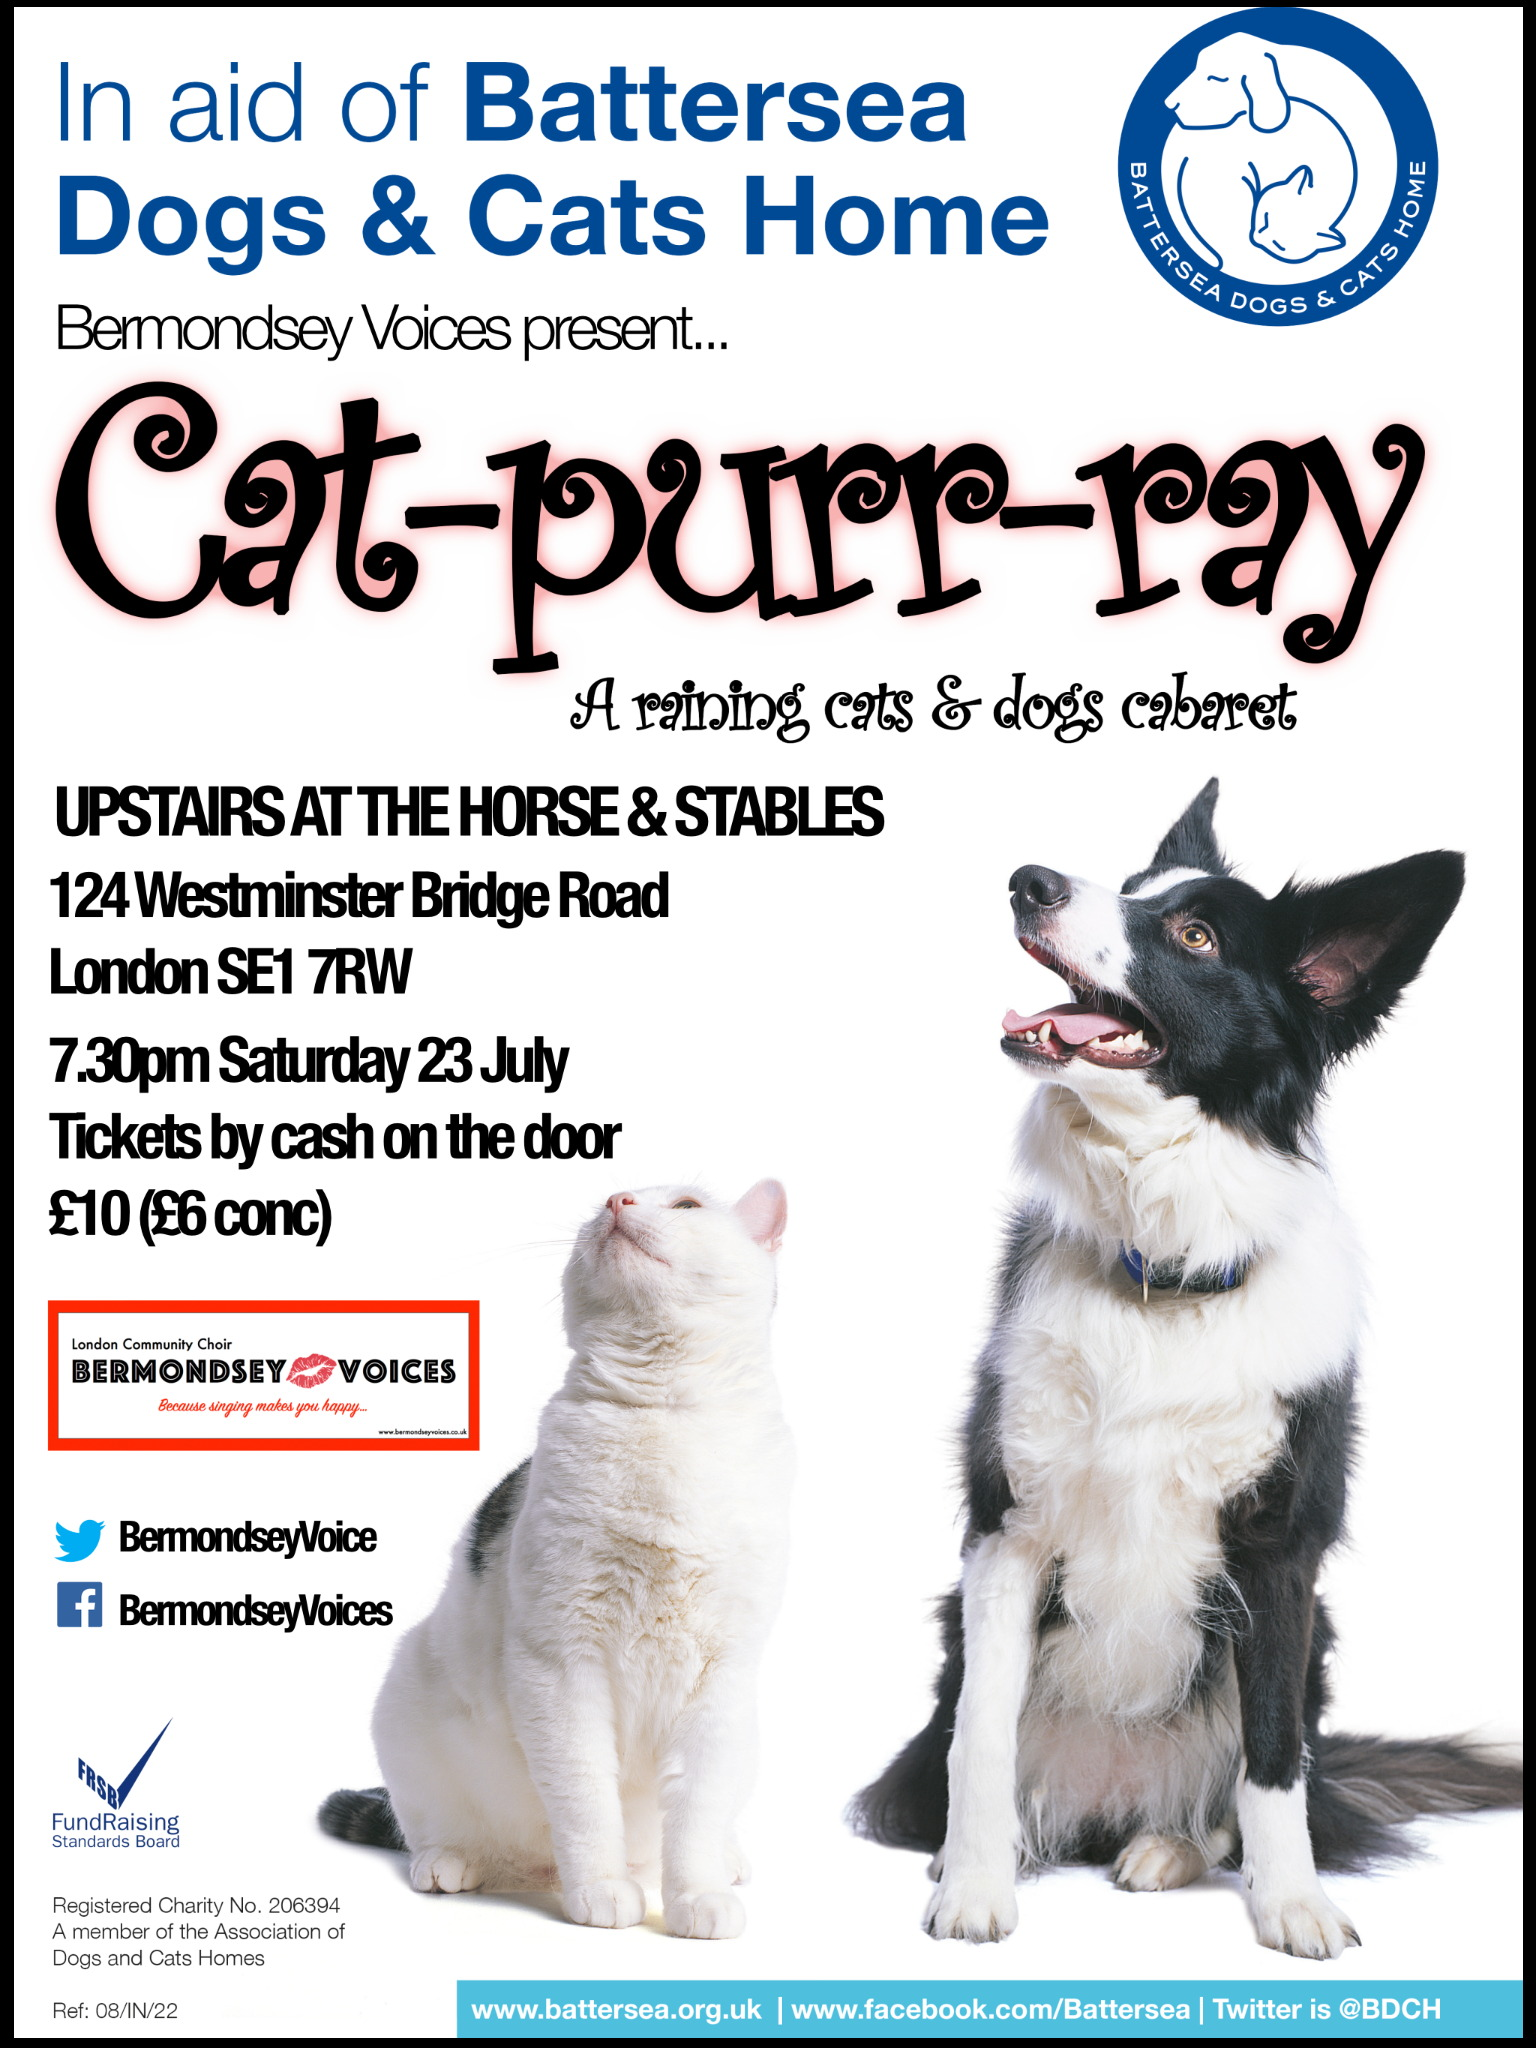 Bermondsey Voices present... Cat-purr-ray at The Horse & Stables